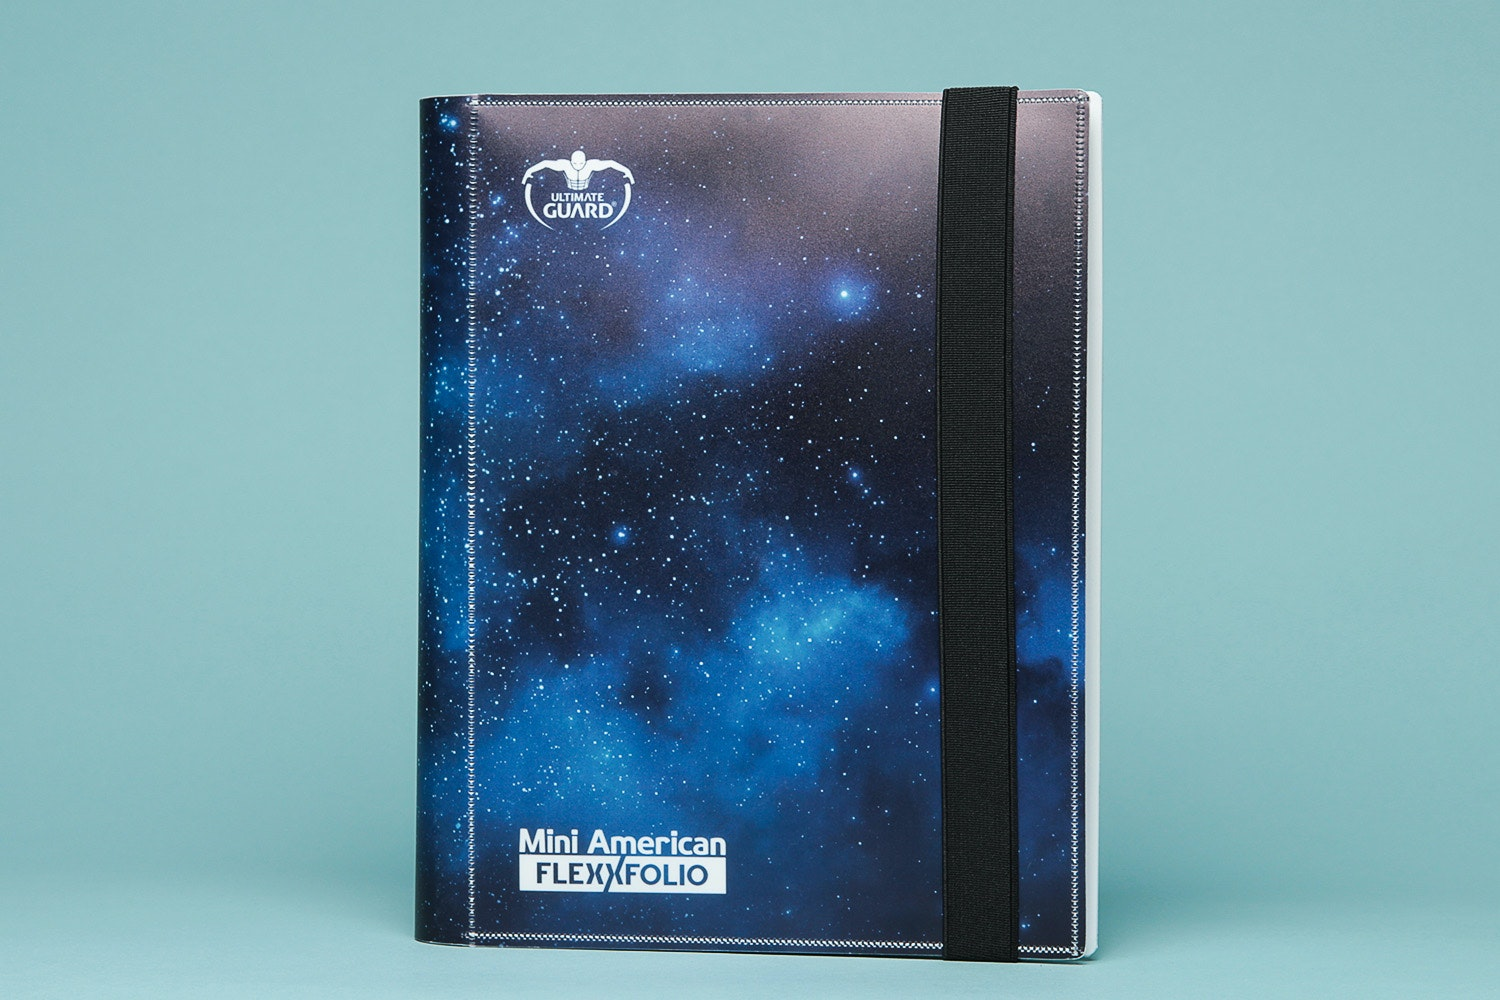 Mini American Flexxfolio (for X-Wing)